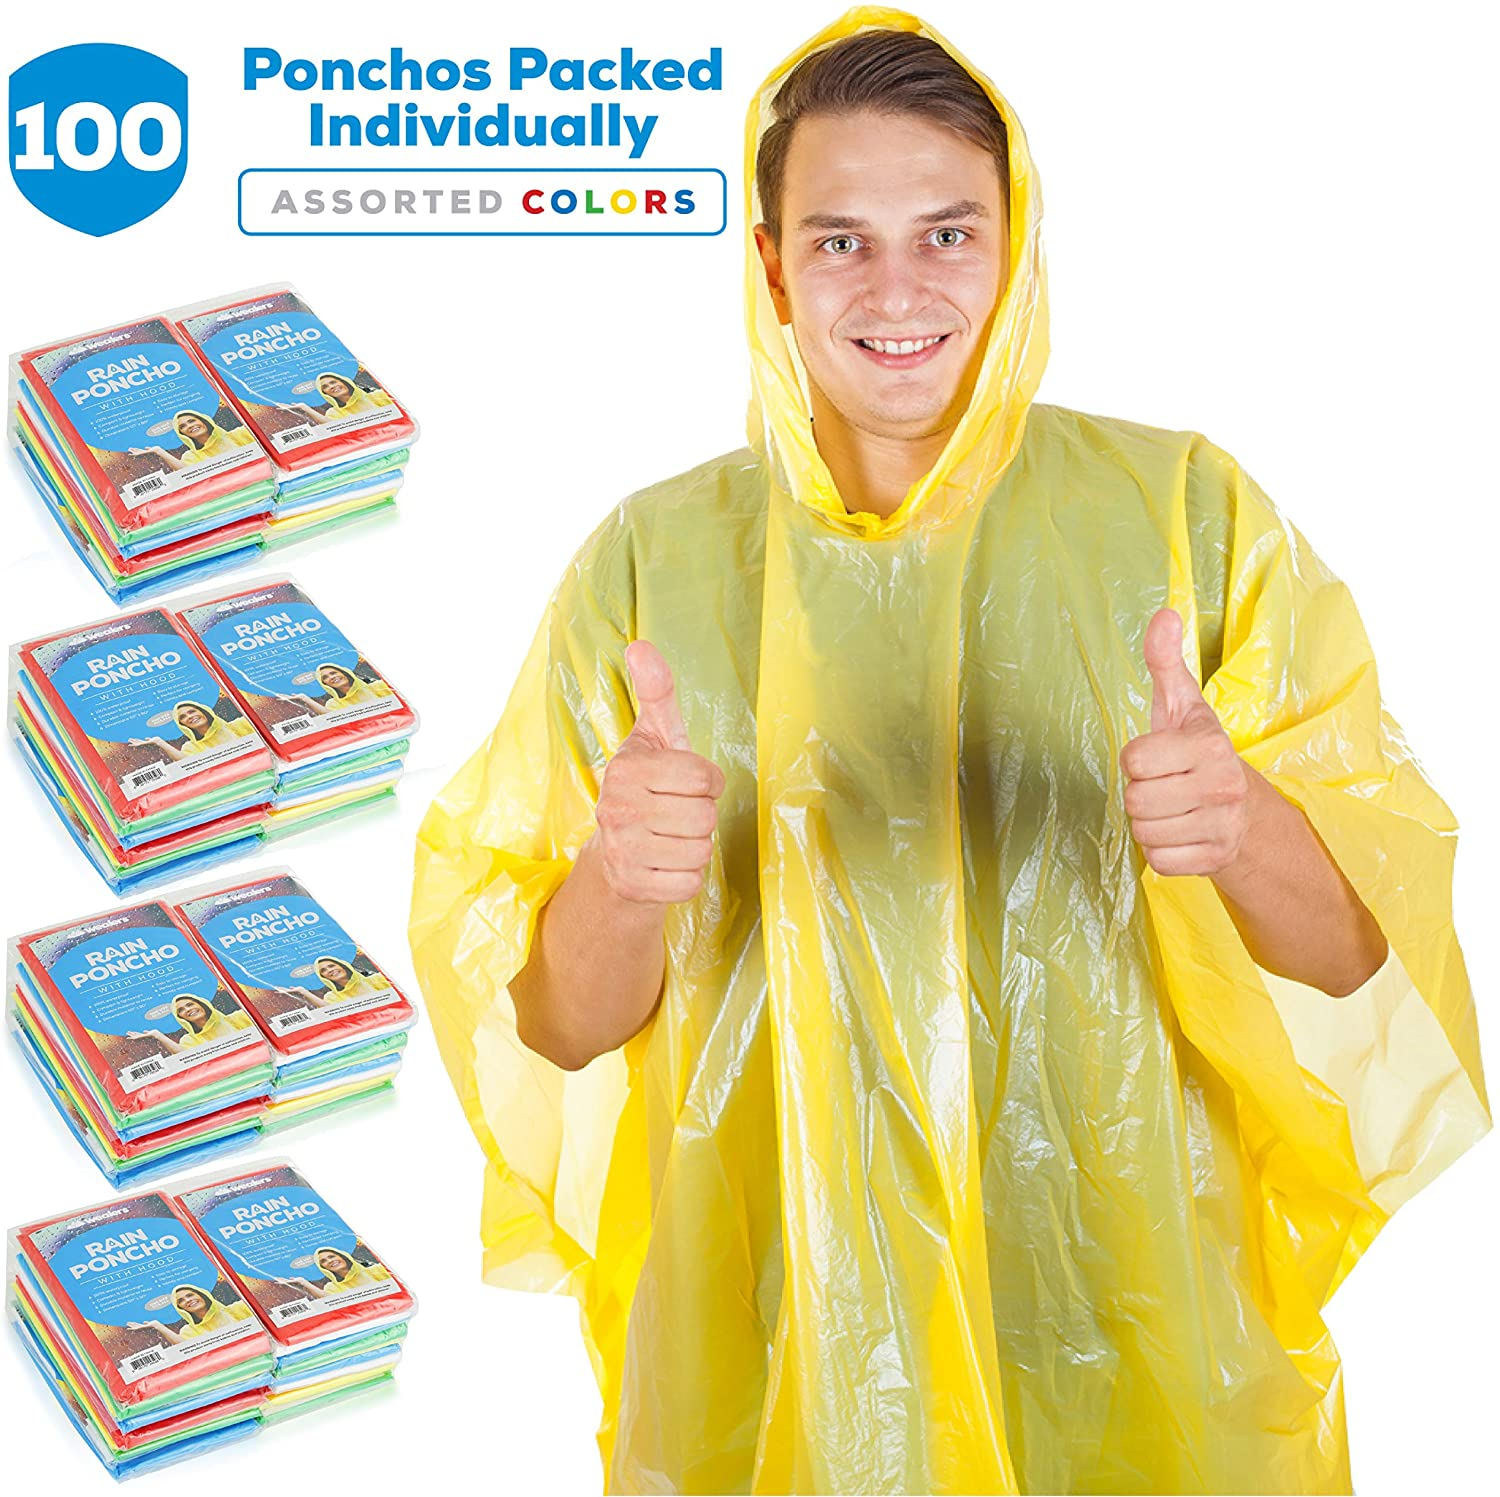 Wealers Rain Ponchos for Adults Teens Disposable Rain Poncho Bulk Pack Women Men Emergency Raincoat Big Groups Theme Parks Camping Outdoors Multi Colors Waterproof Rain Ponchos